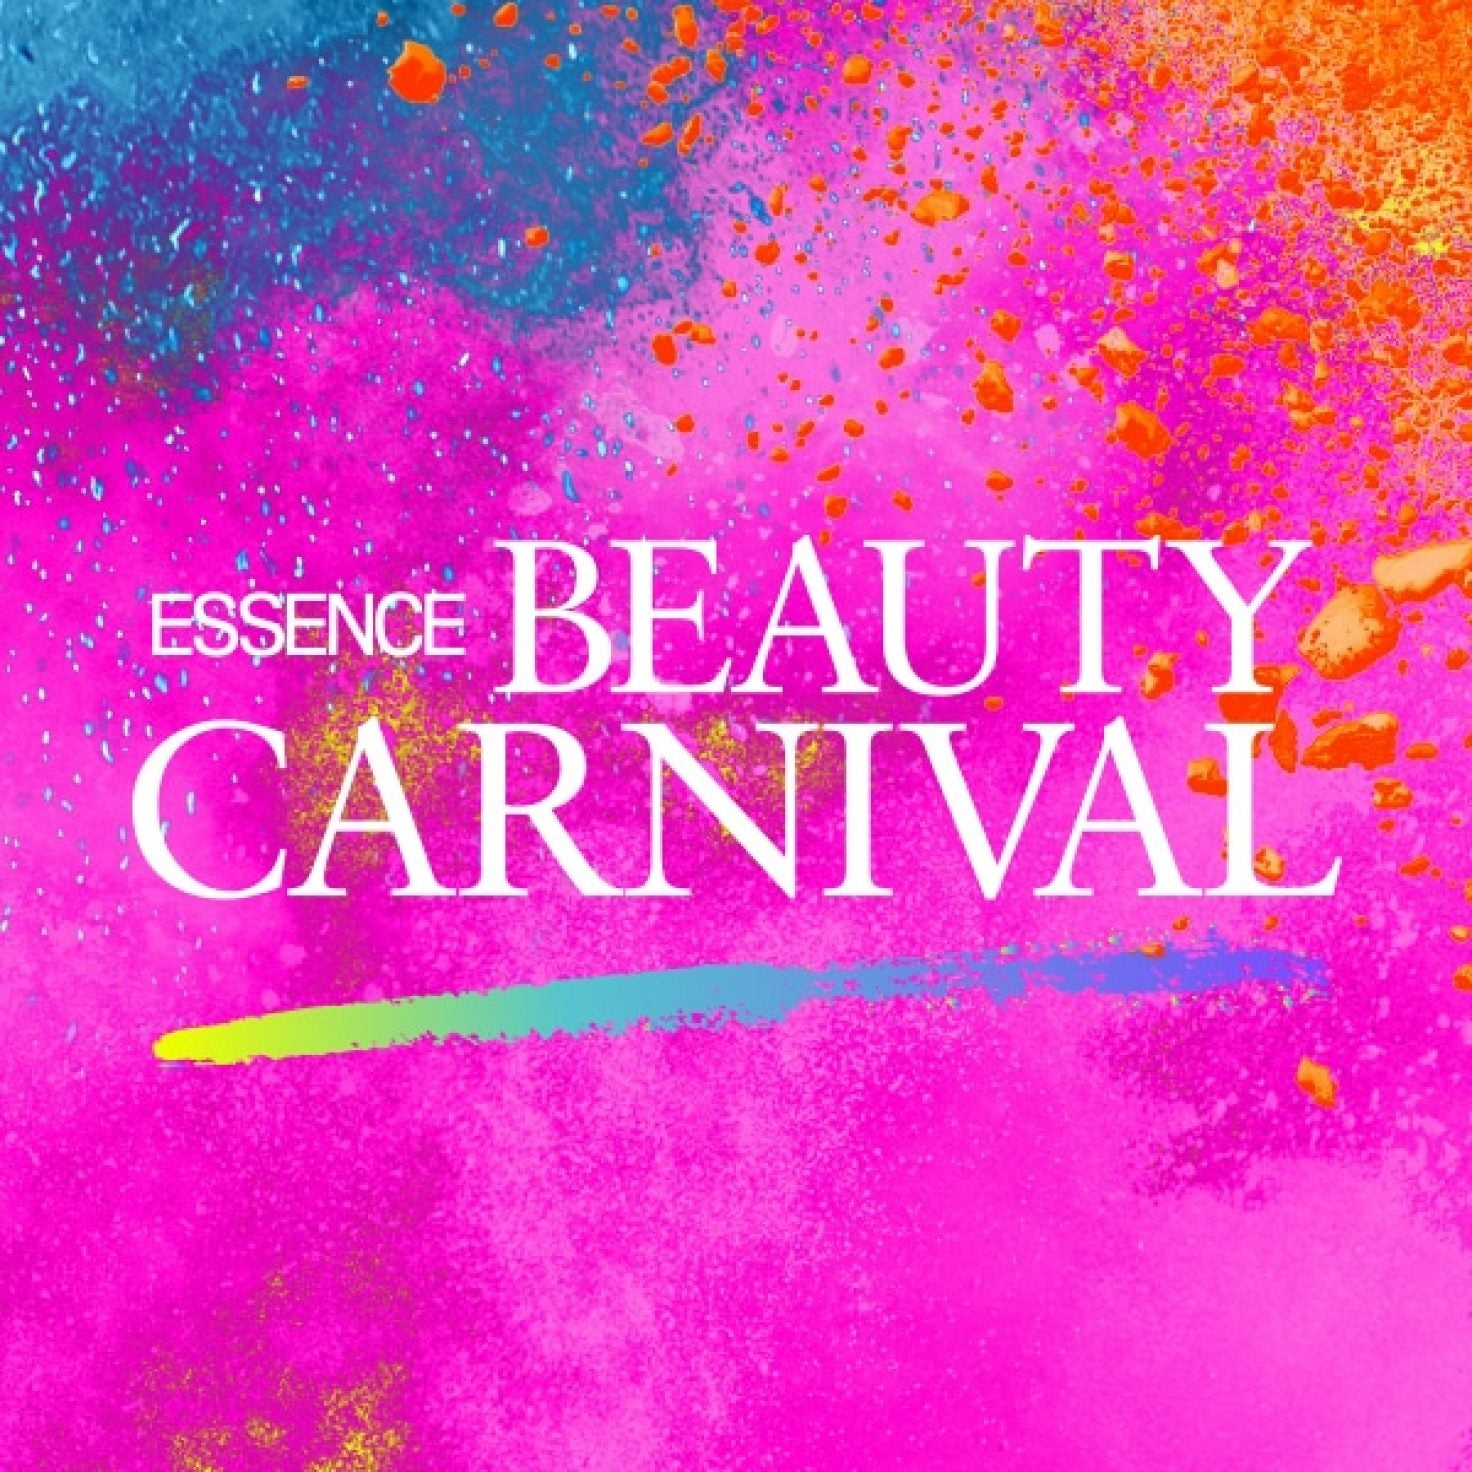 2019 ESSENCE Beauty Carnival Tour: See The Full Lineup...More Names To Be Announced!